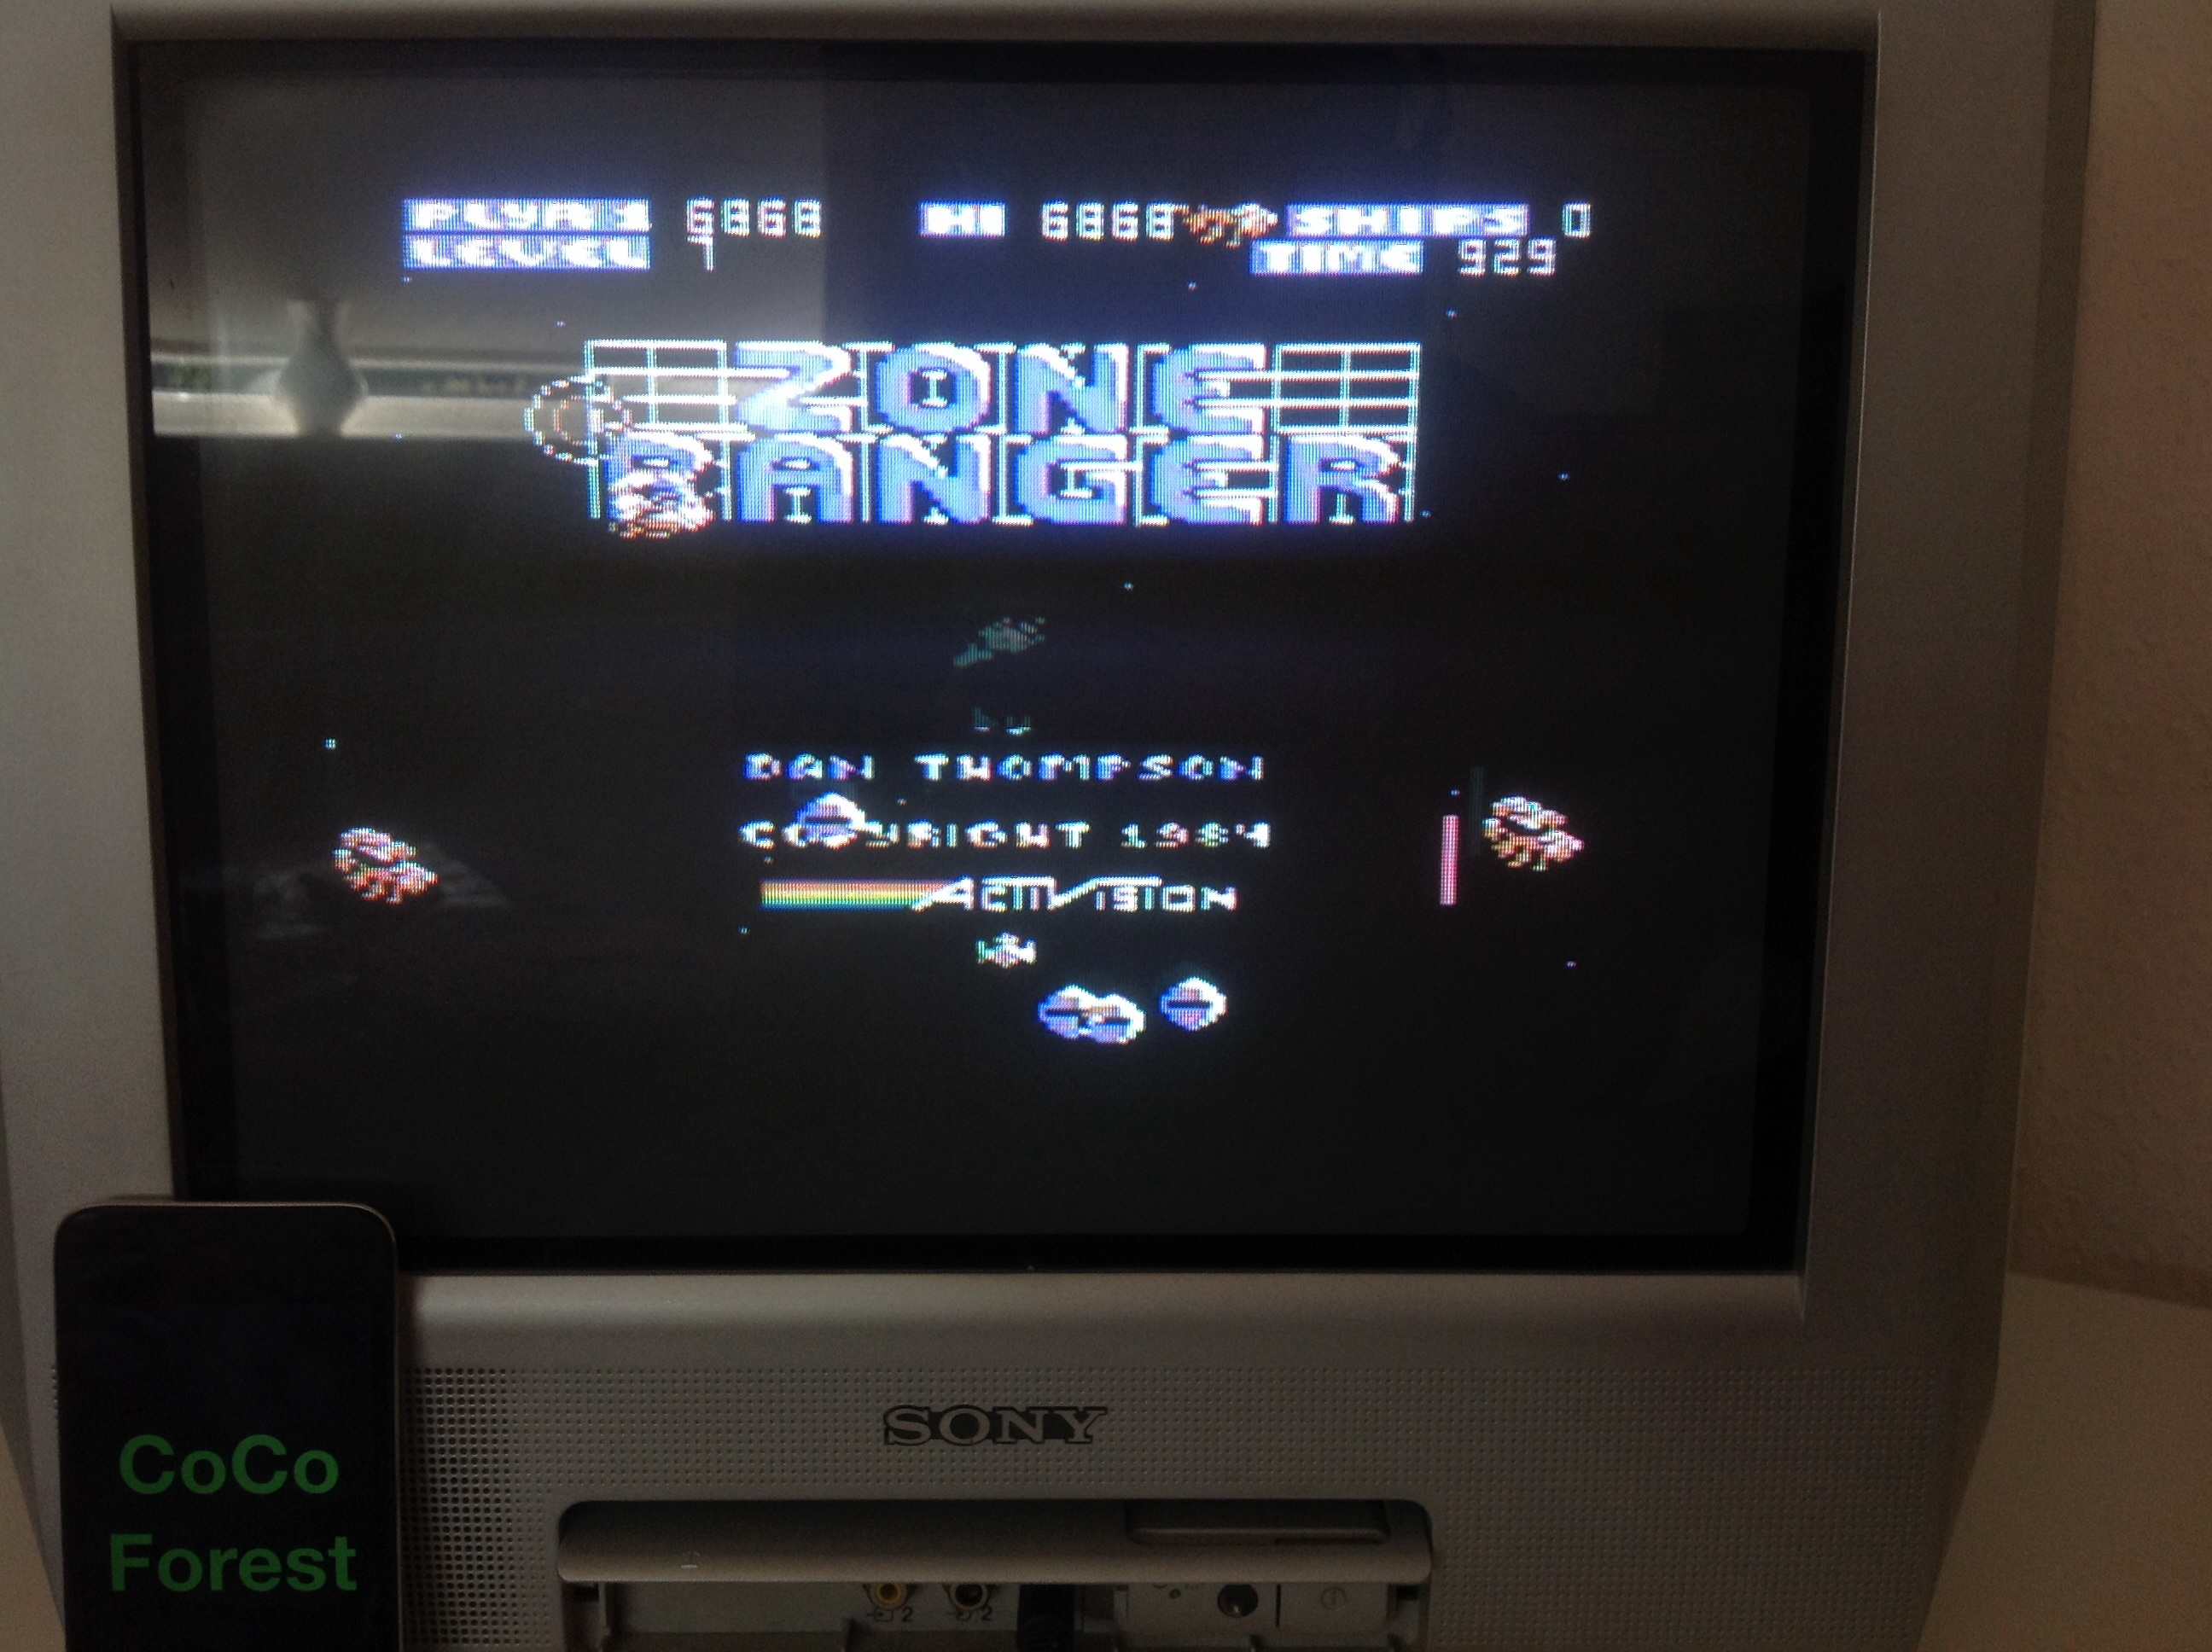 CoCoForest: Zone Ranger (Commodore 64) 6,868 points on 2014-09-07 08:00:26